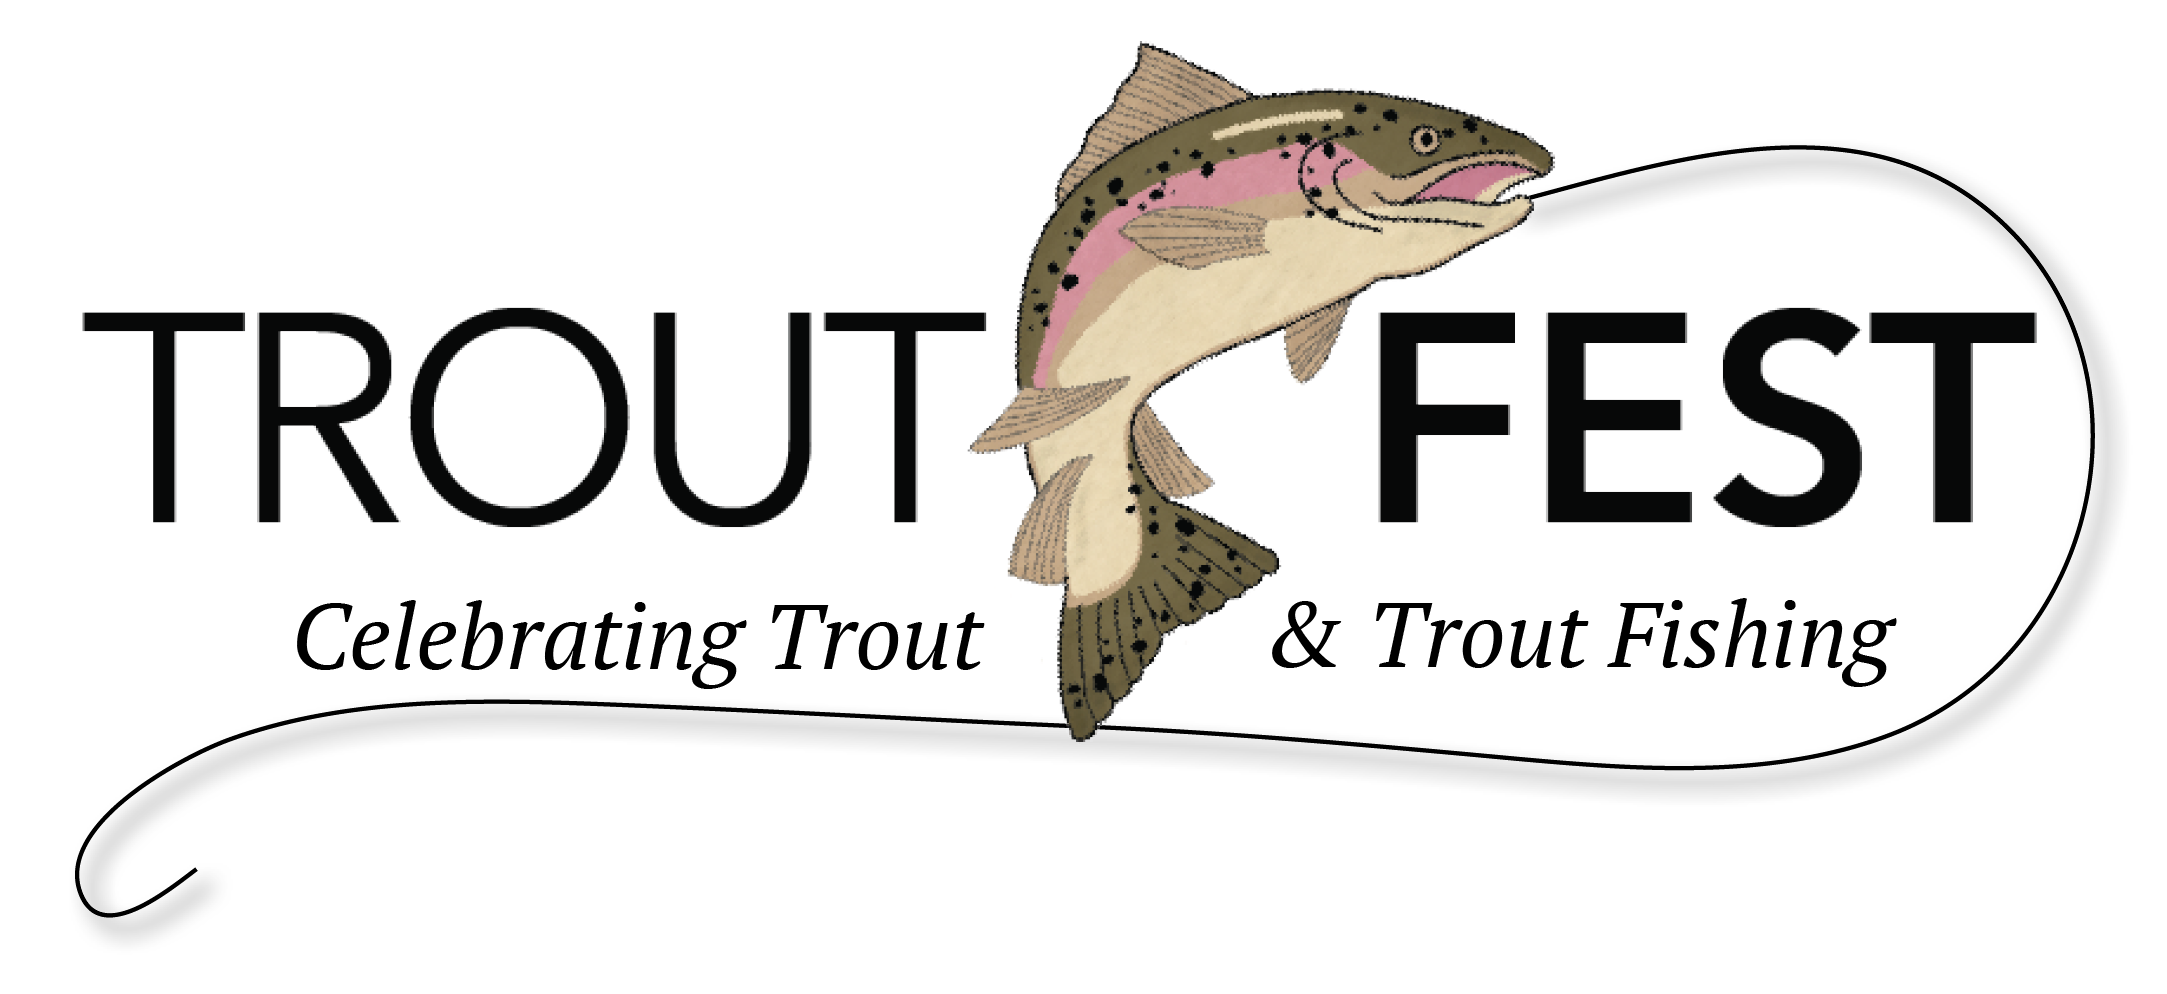 Fest celebrating and fishing. Trout clipart trout fisherman